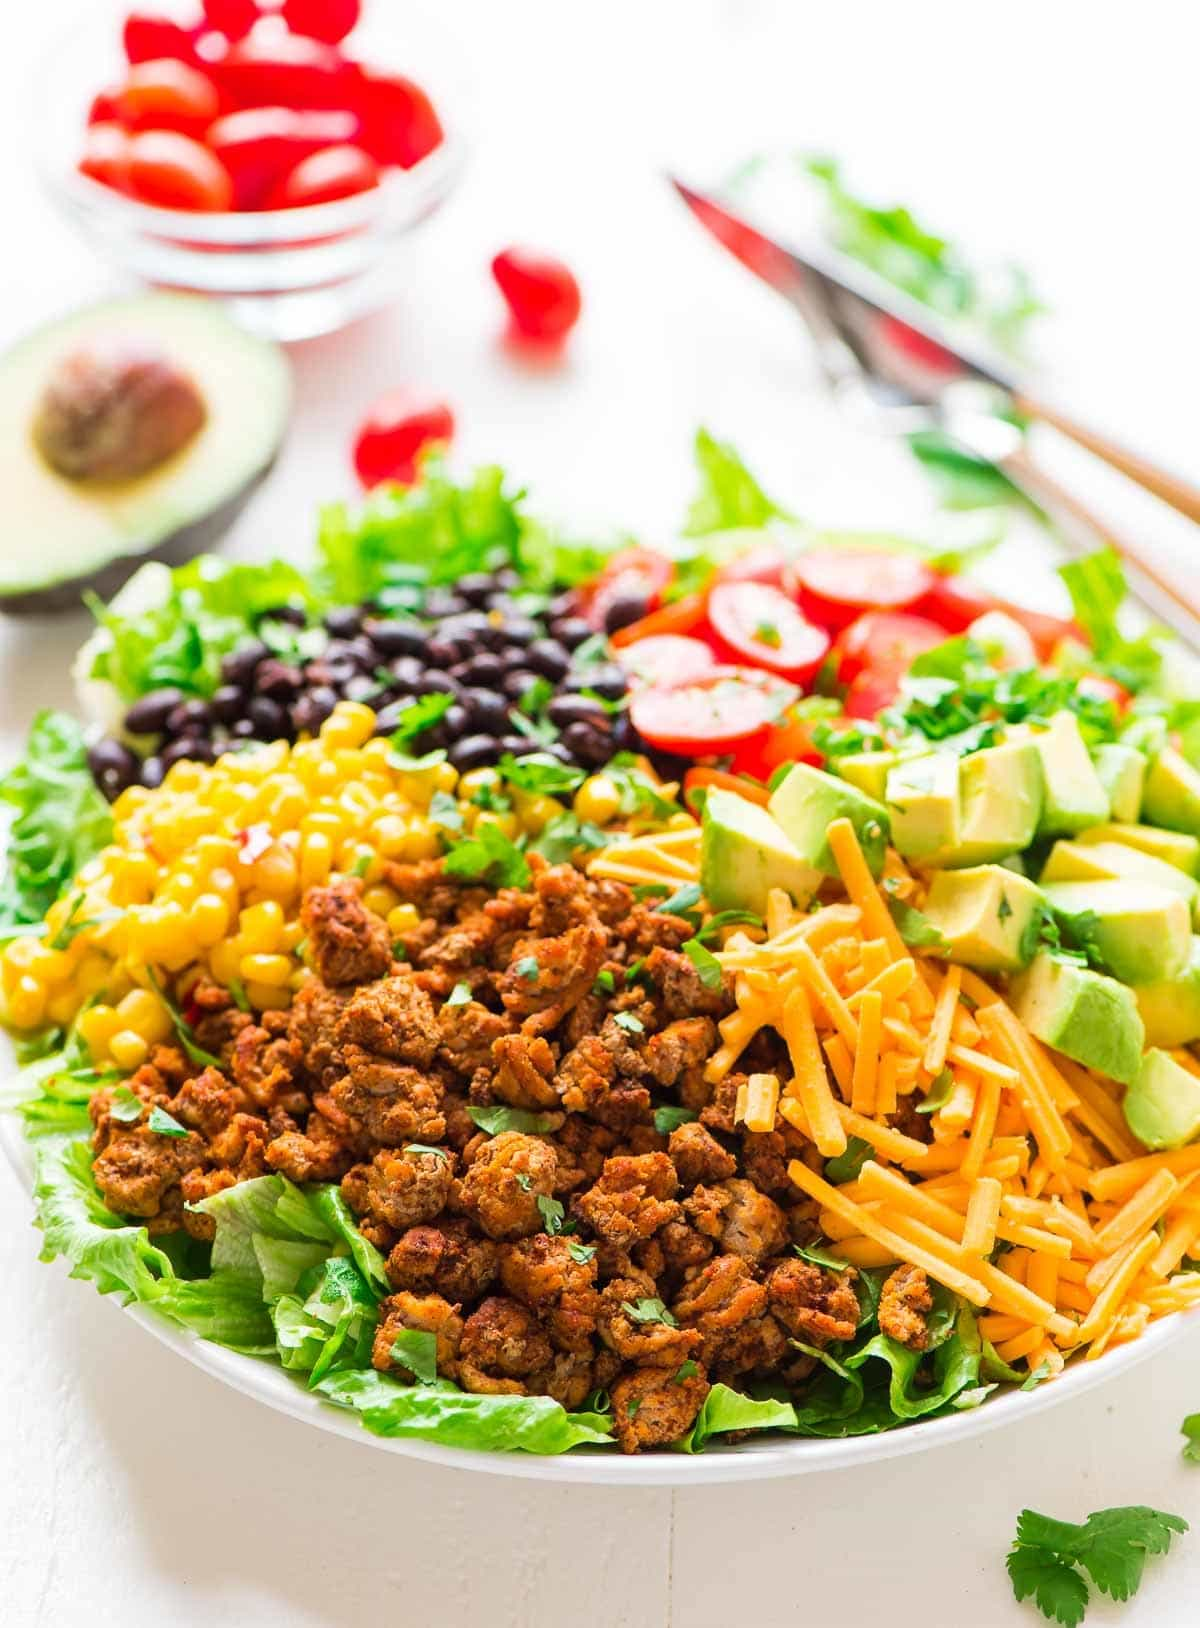 Easy ground turkey salad with tons of taco flavors like corn, black beans, and avocado